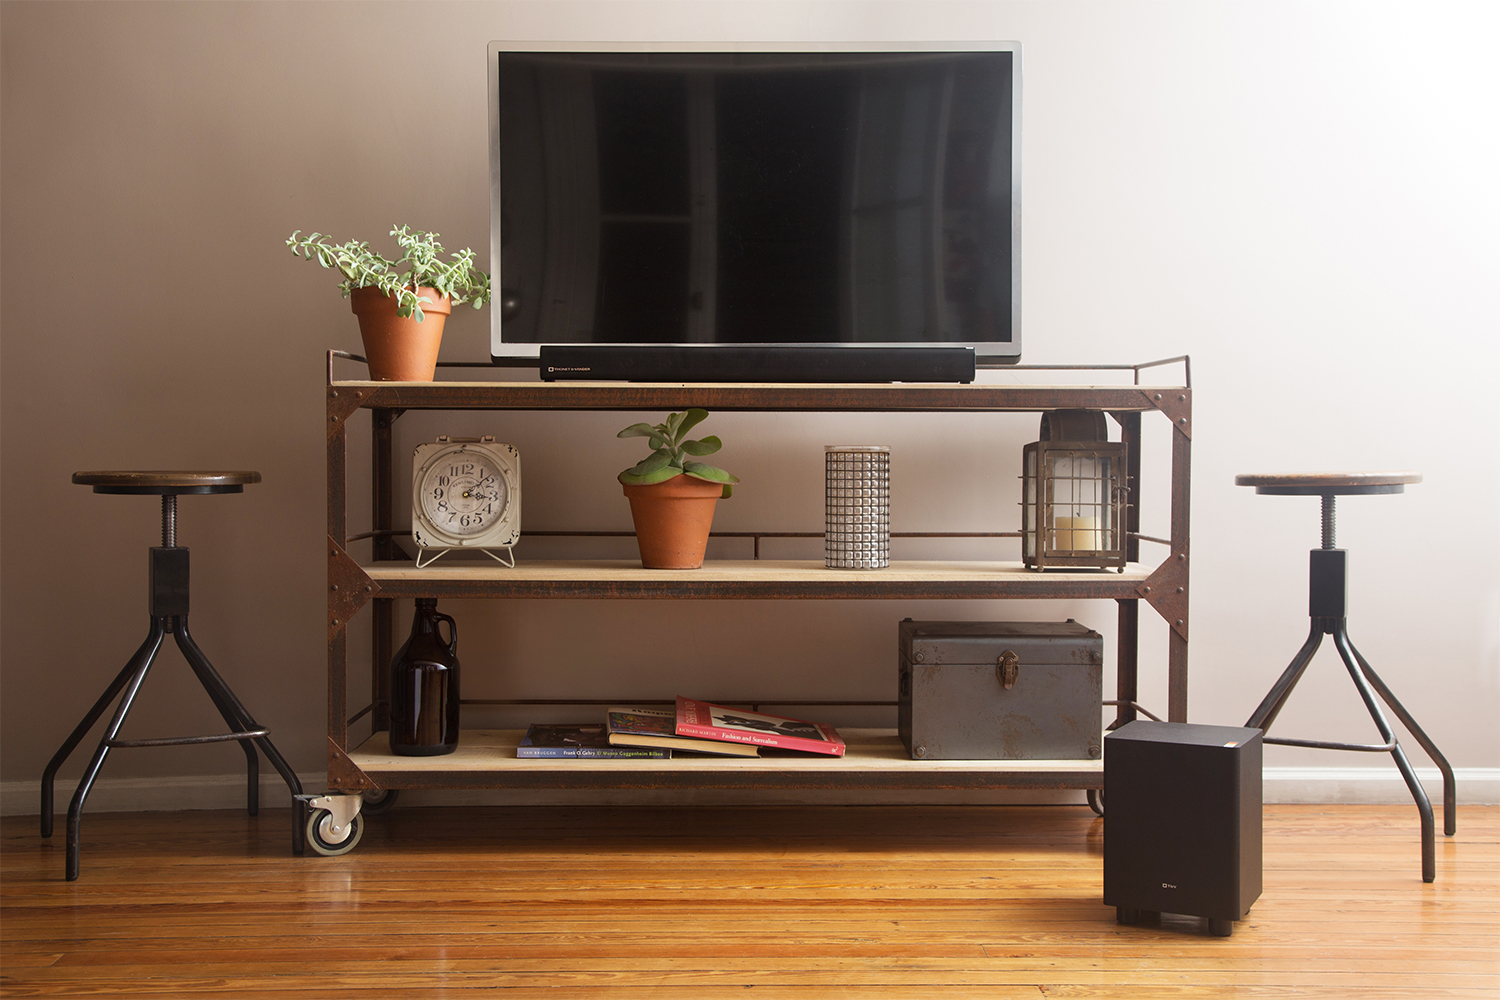 Loa Soundbar Thonet And Vander Dunn